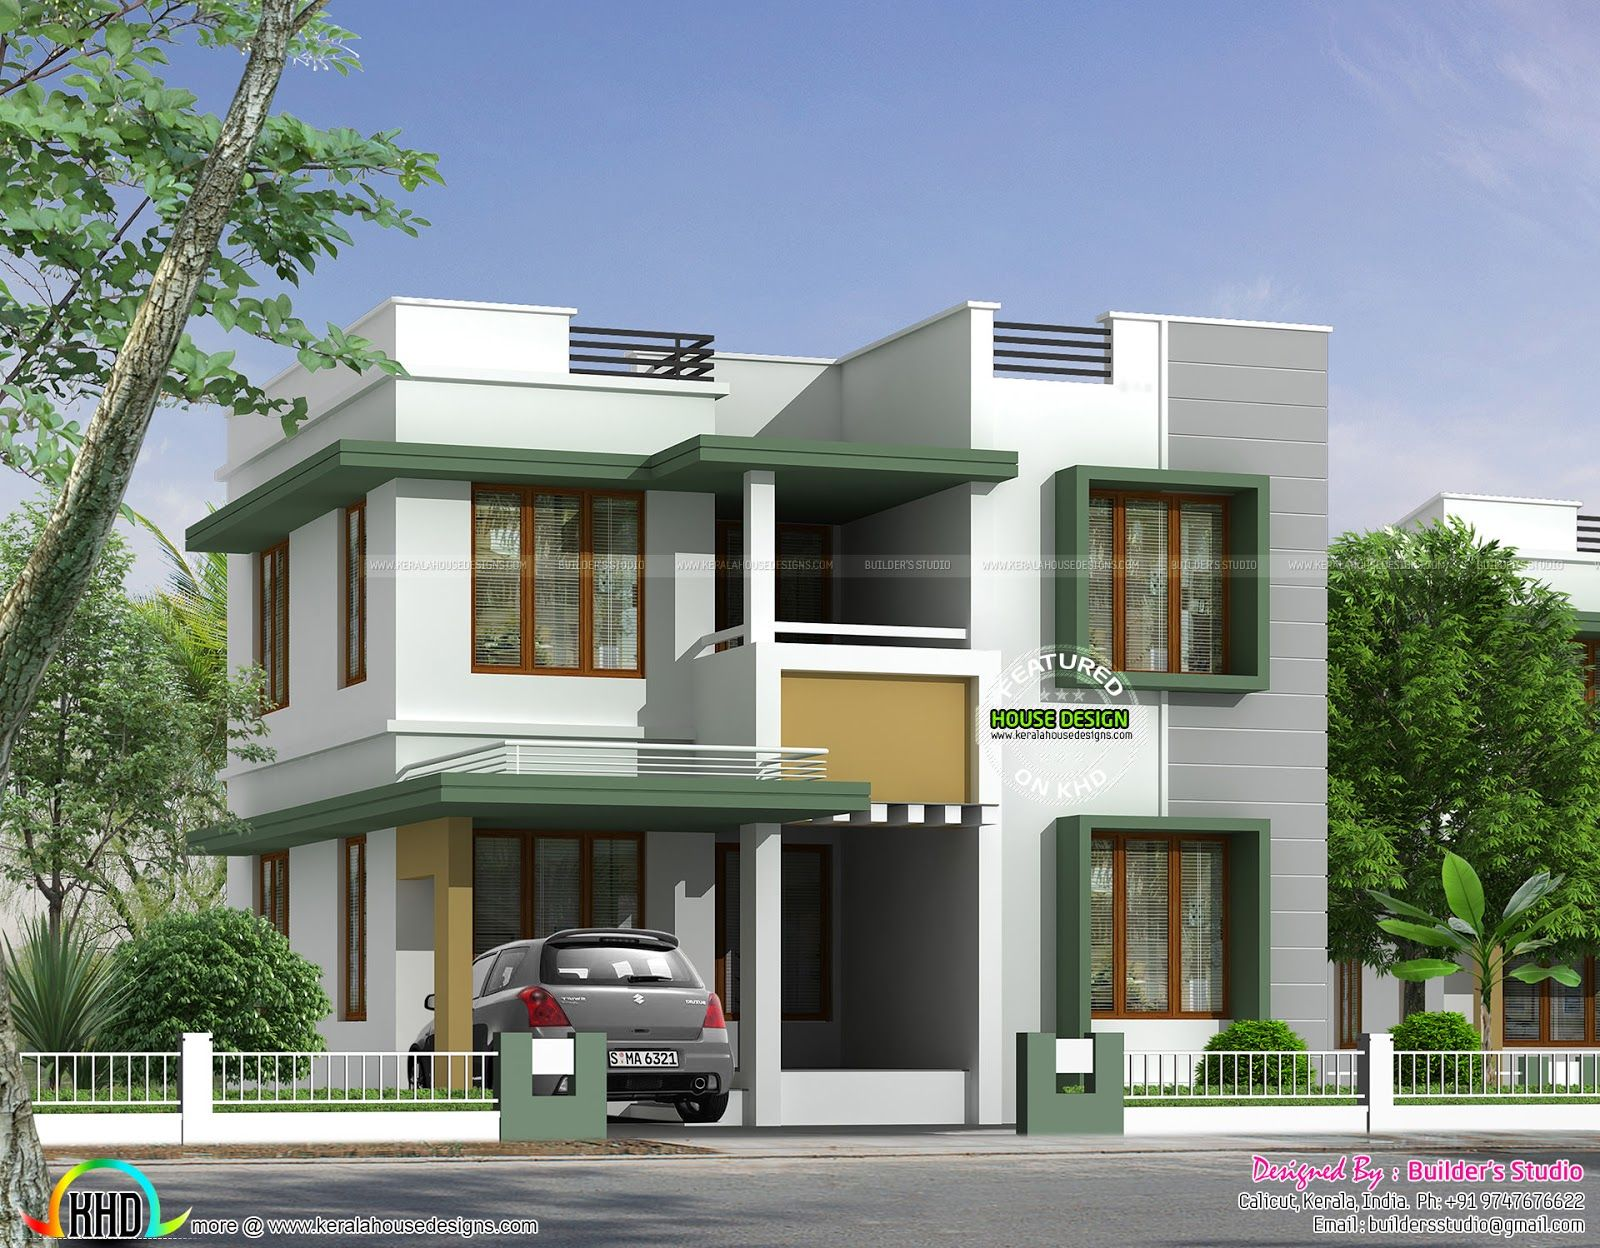 House Designs Further 1400 Sq Ft House Plans On 1400